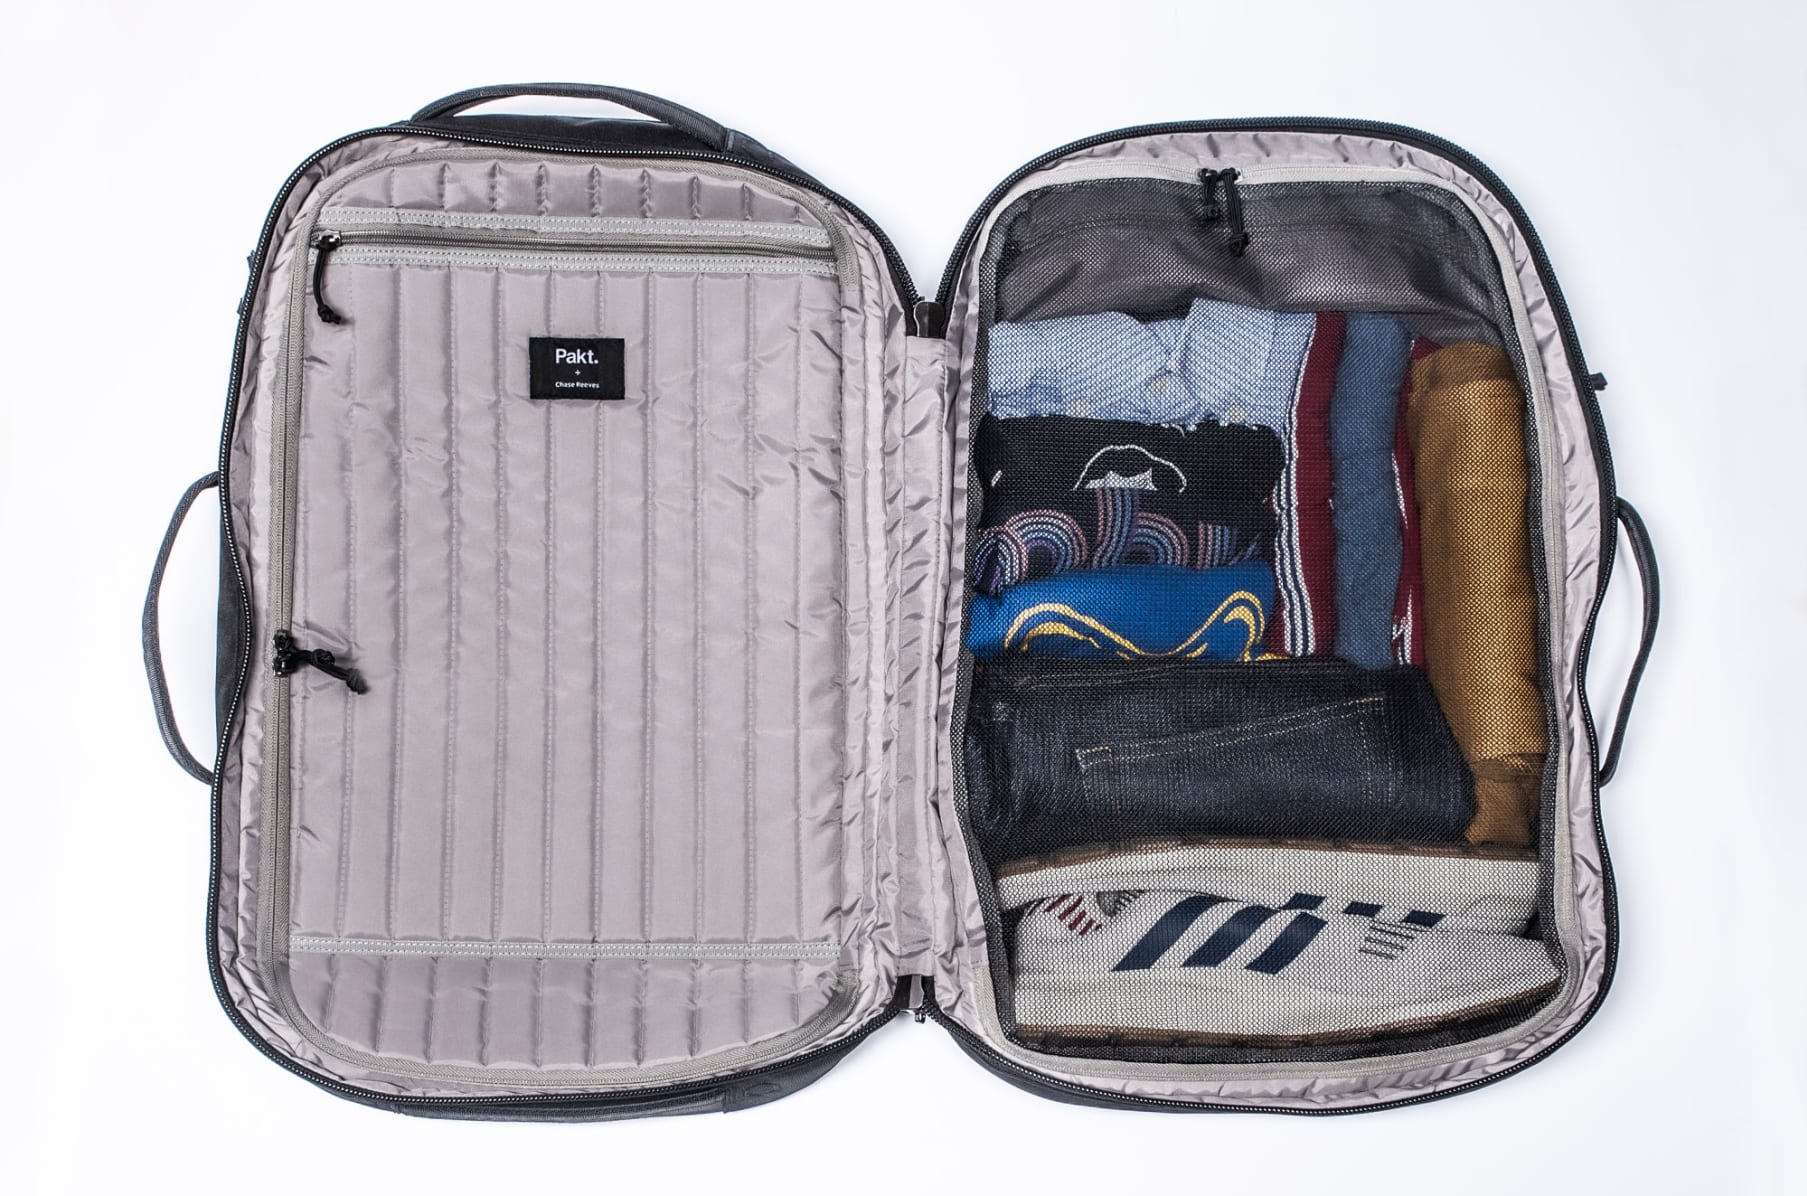 Pakt Travel Backpack: The Carry-On Game Changer | Indiegogo